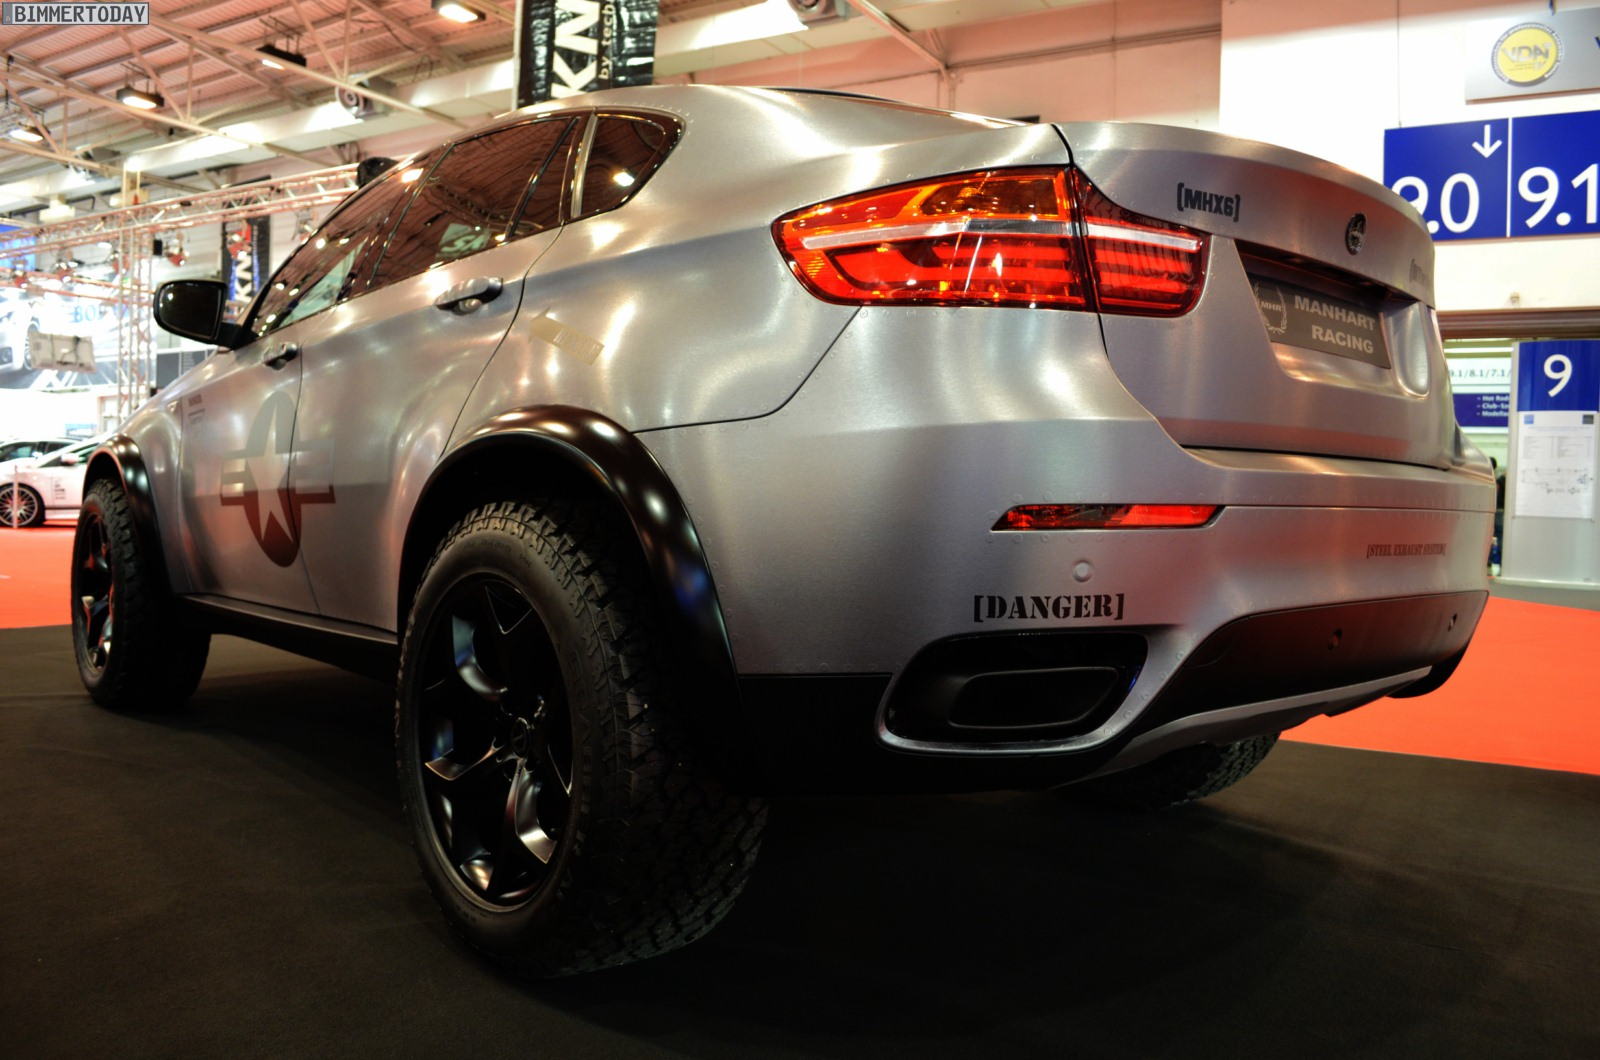 E71 Bmw X6m Dirt Edition By Manhart Racing Bmw Car Tuning